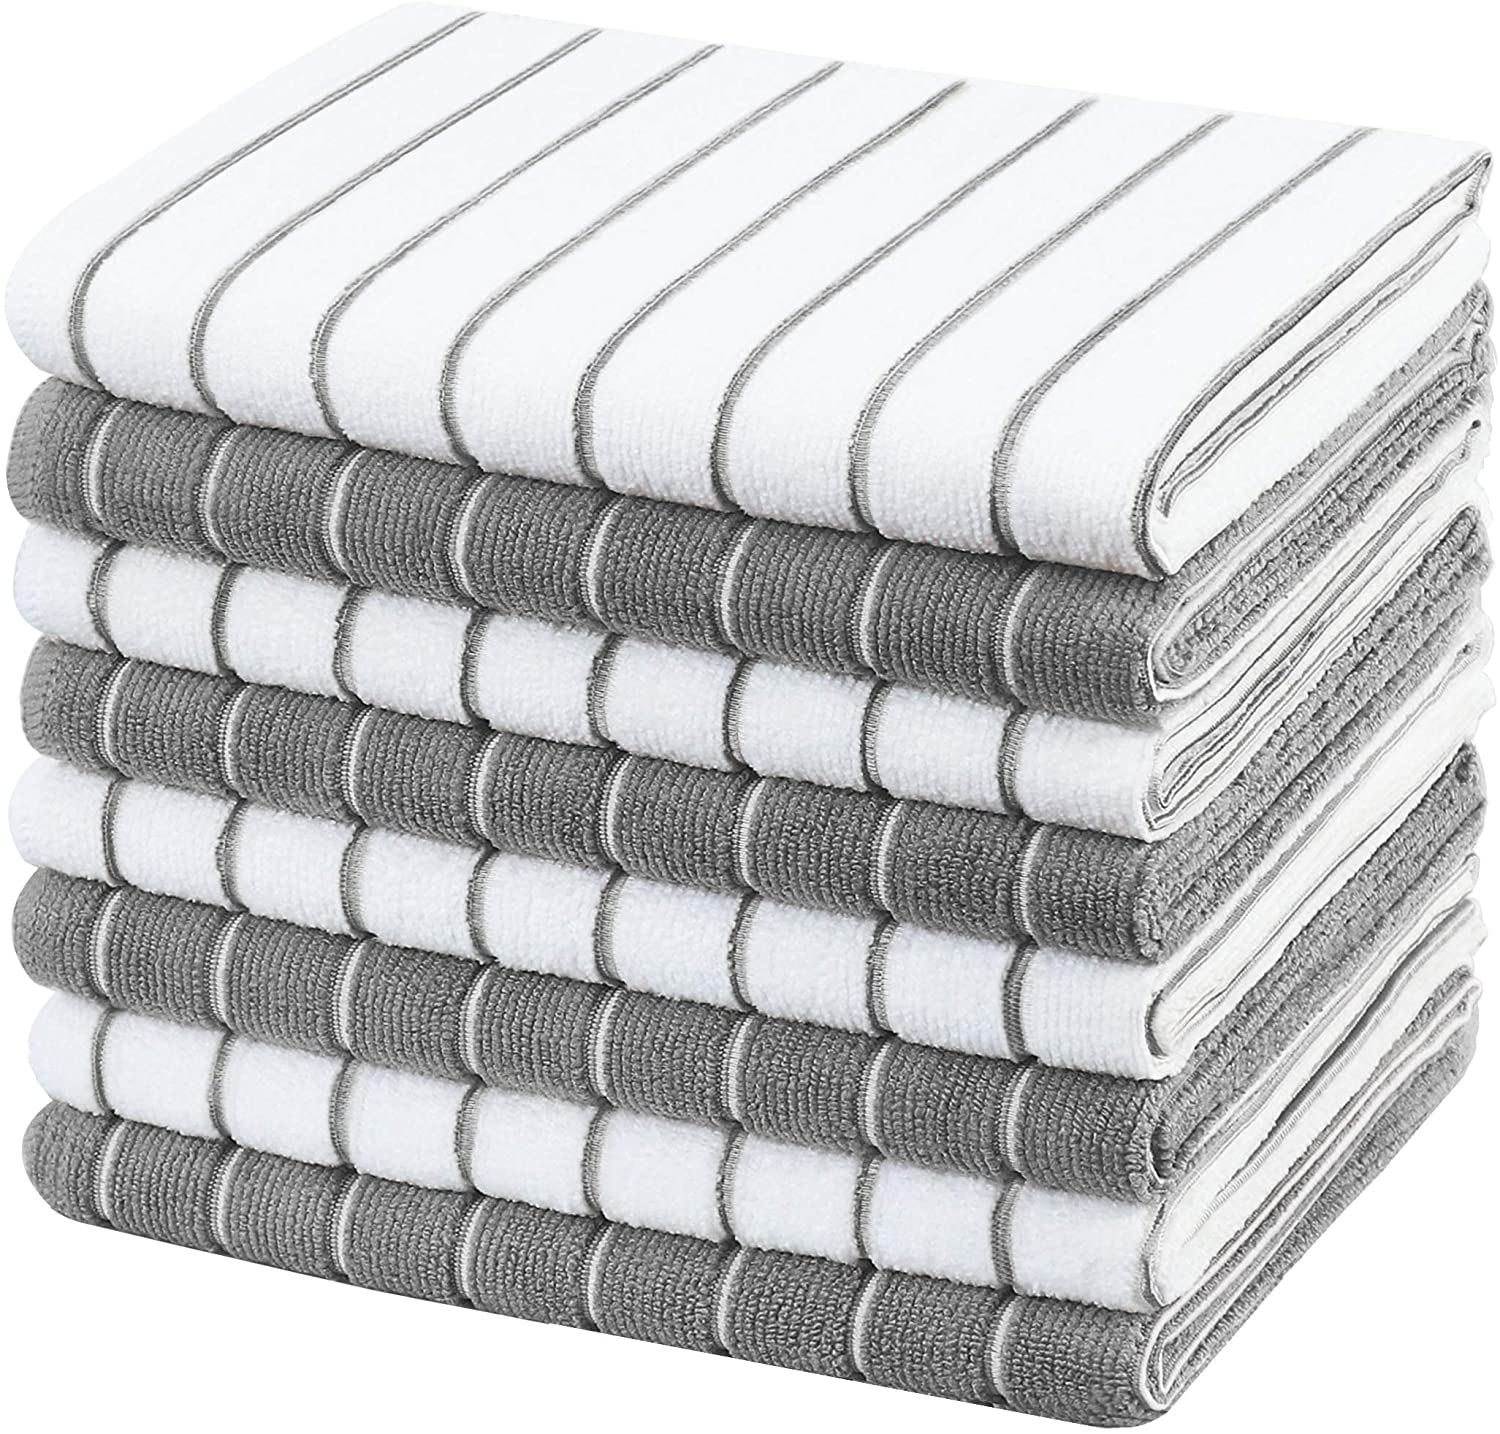 Amazon Com Gryeer Microfiber Kitchen Towels Stripe Designed Soft And Super Absorbent Dish Towels Pack Of 8 18 X 26 Inch Gray And White Kitchen Dining